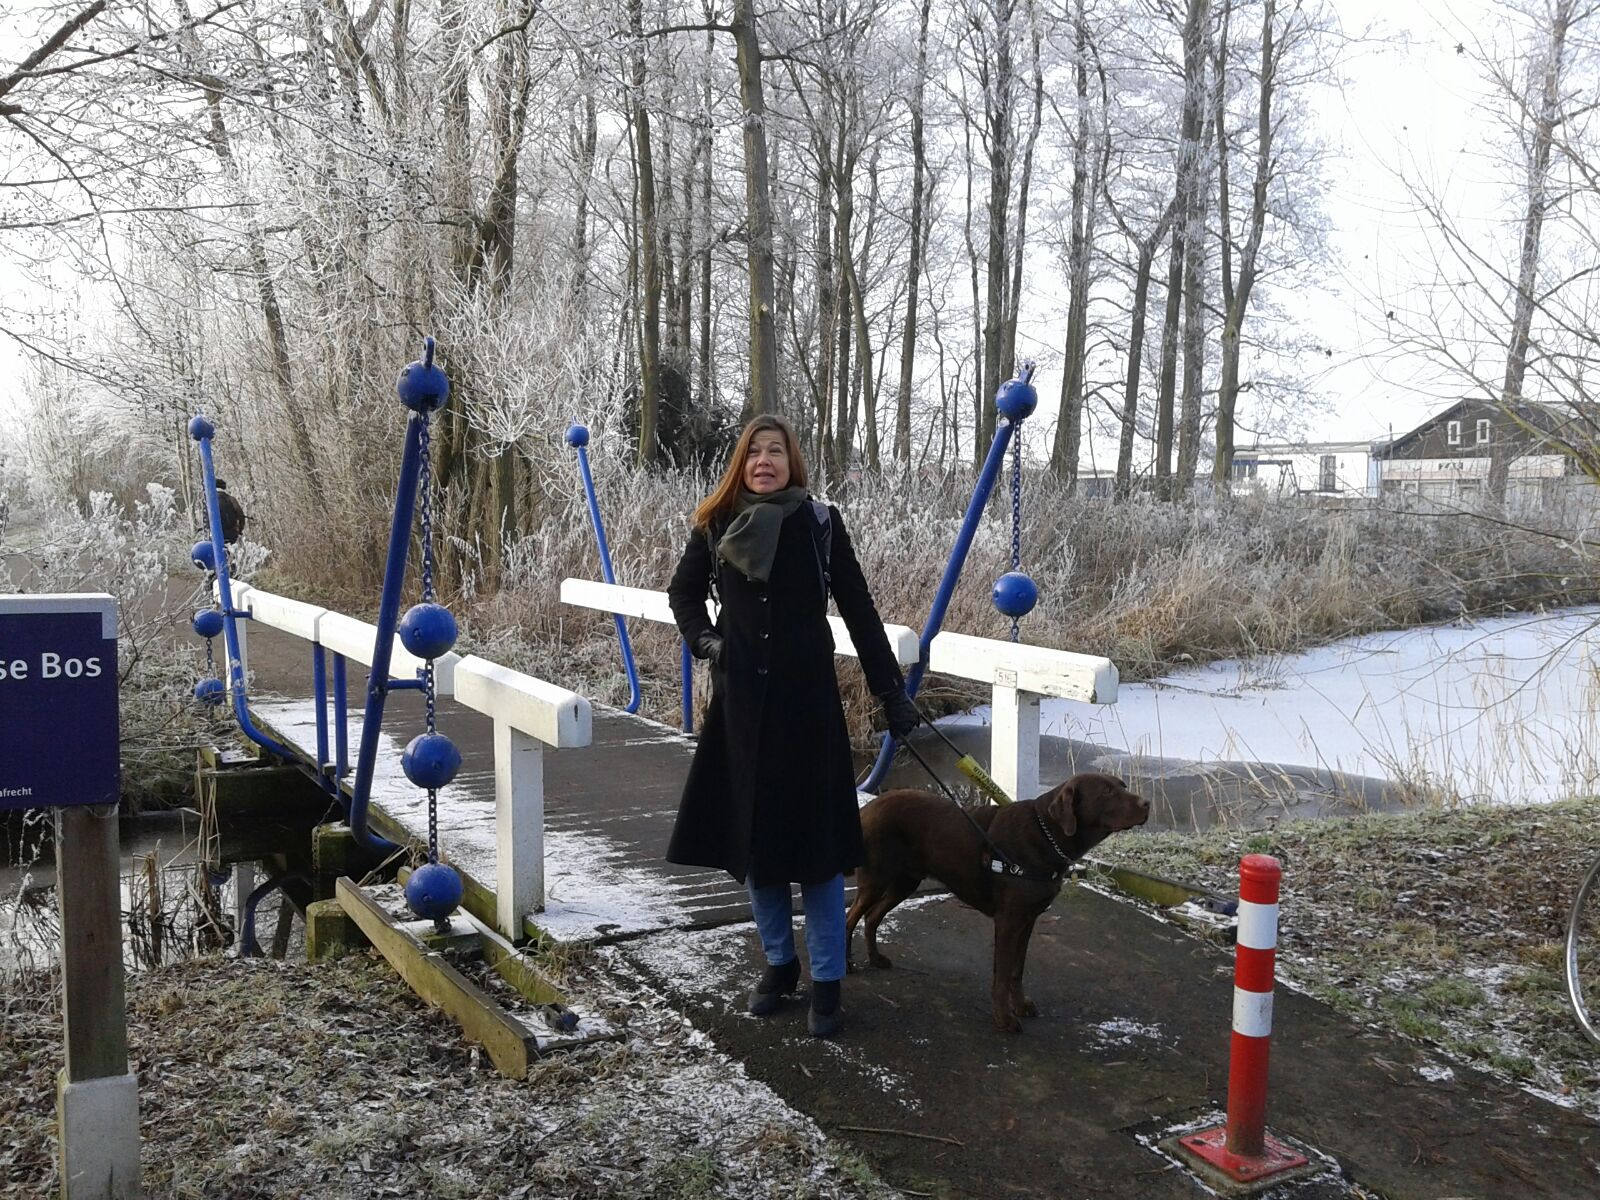 Laura Meddens stands with her guide dog Nugget along the shore with some frosted trees and a footbridge over a canal behind her in Amsterdam.